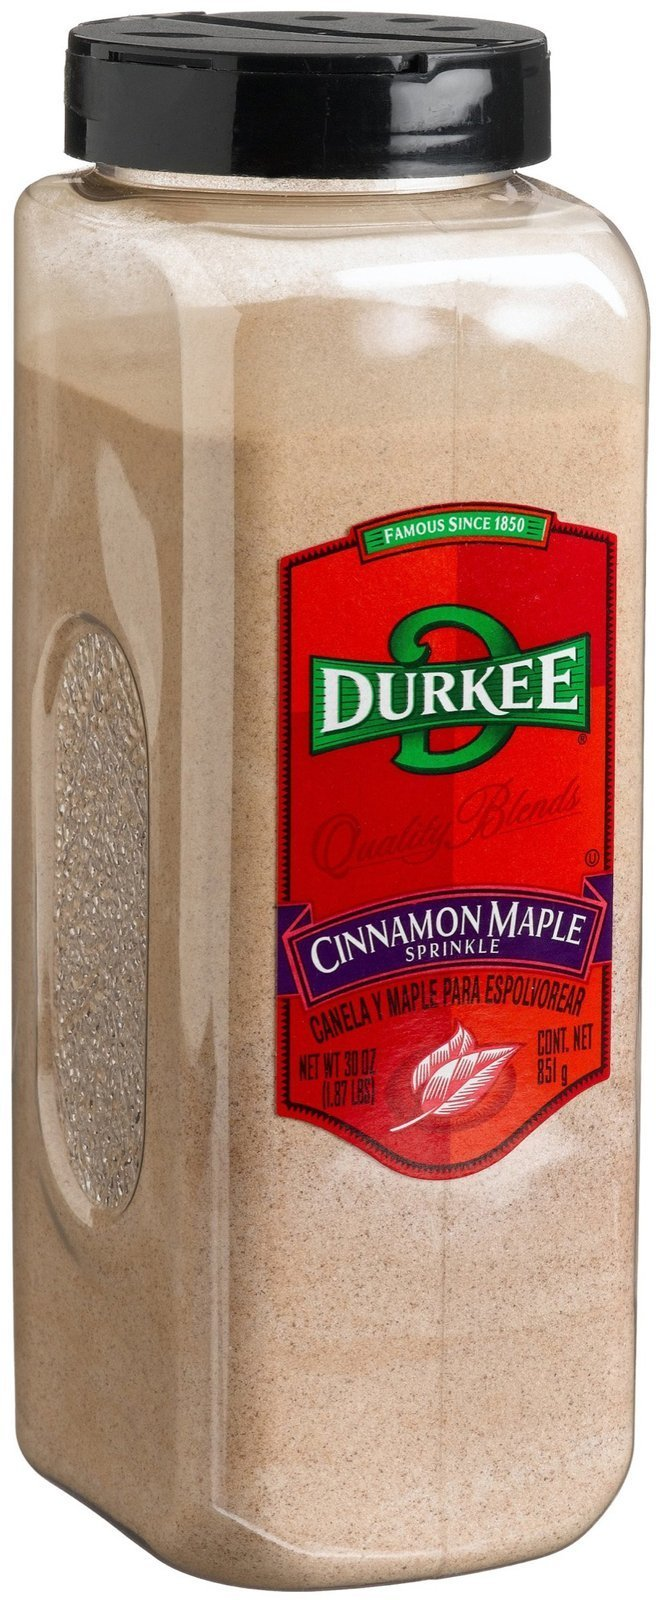 Durkee Cinnamon Maple Sprinkle, 30oz